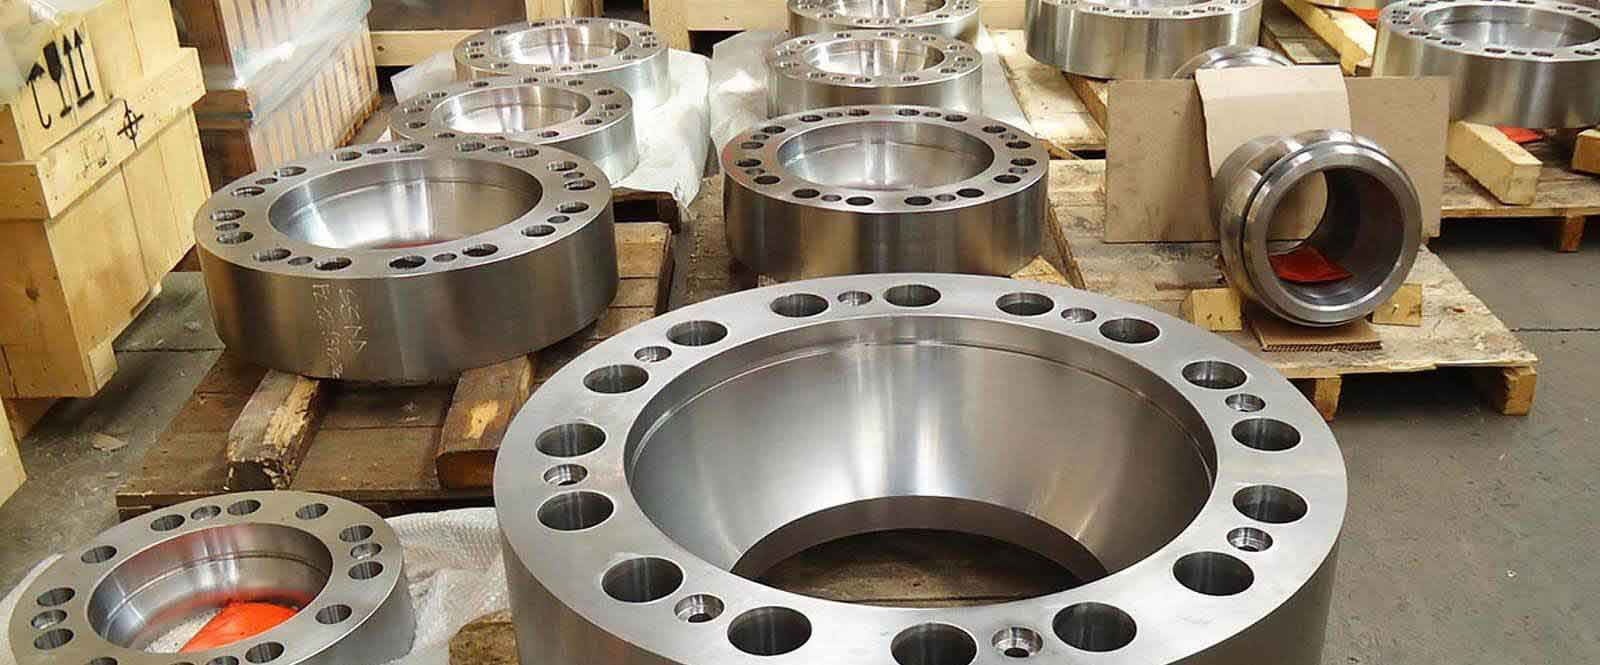 Sheet, Plate, Coil, Wire, Flat, Angle Channel, Flanges, Fasteners, Round Bar, Pipes and Tubes Manufacturer, Sheet, Plate, Coil, Wire, Flat, Angle Channel, Flanges, Fasteners, Round Bar, Pipes and Tubes Supplier, Sheet, Plate, Coil, Wire, Flat, Angle Channel, Flanges, Fasteners, Round Bar, Pipes and Tubes Exporter.